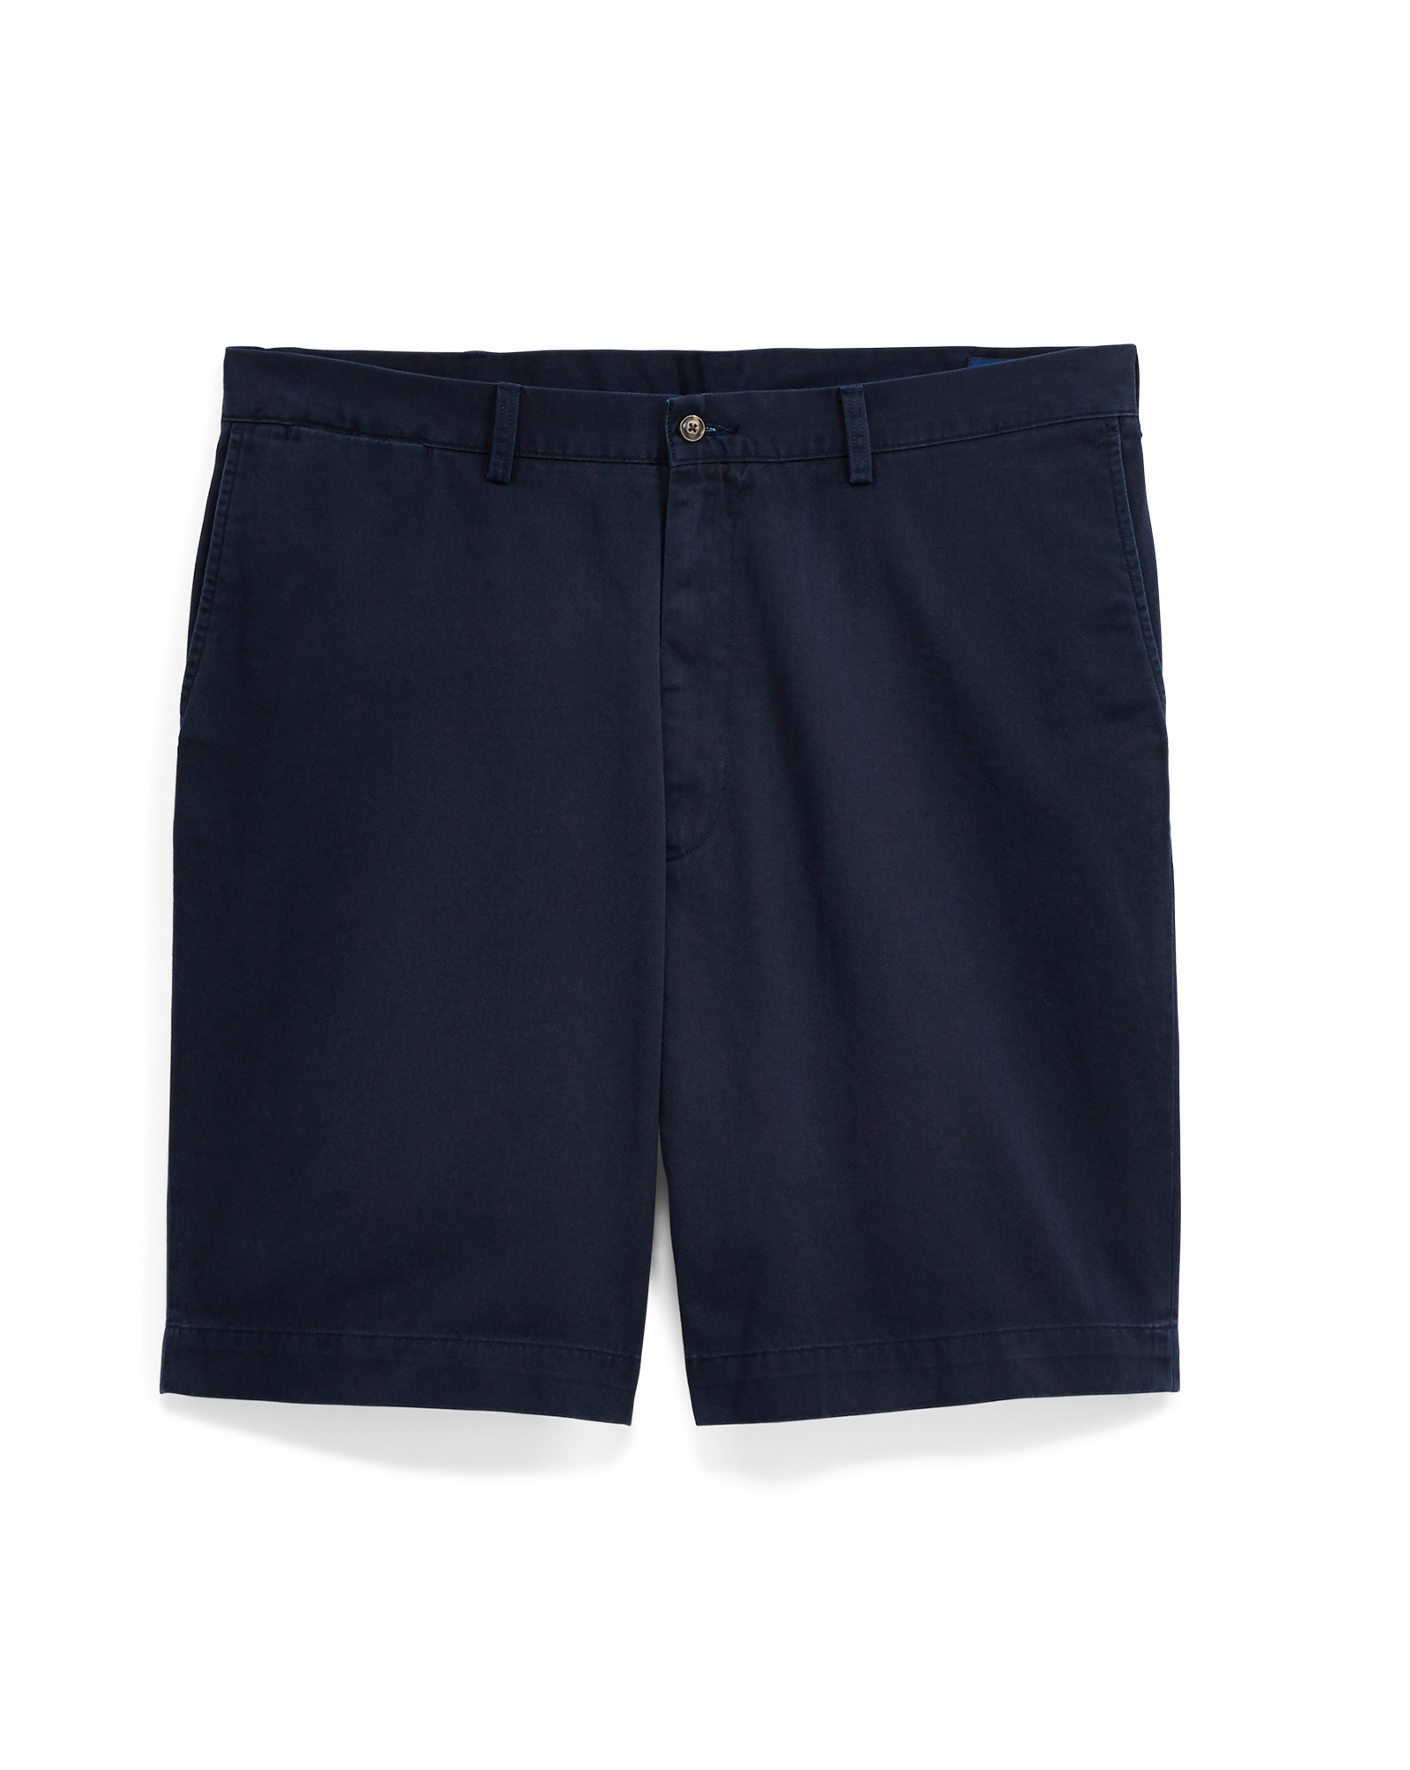 Men's Big & Tall Chino, Athletic, and Cargo Shorts | RalphLauren.com